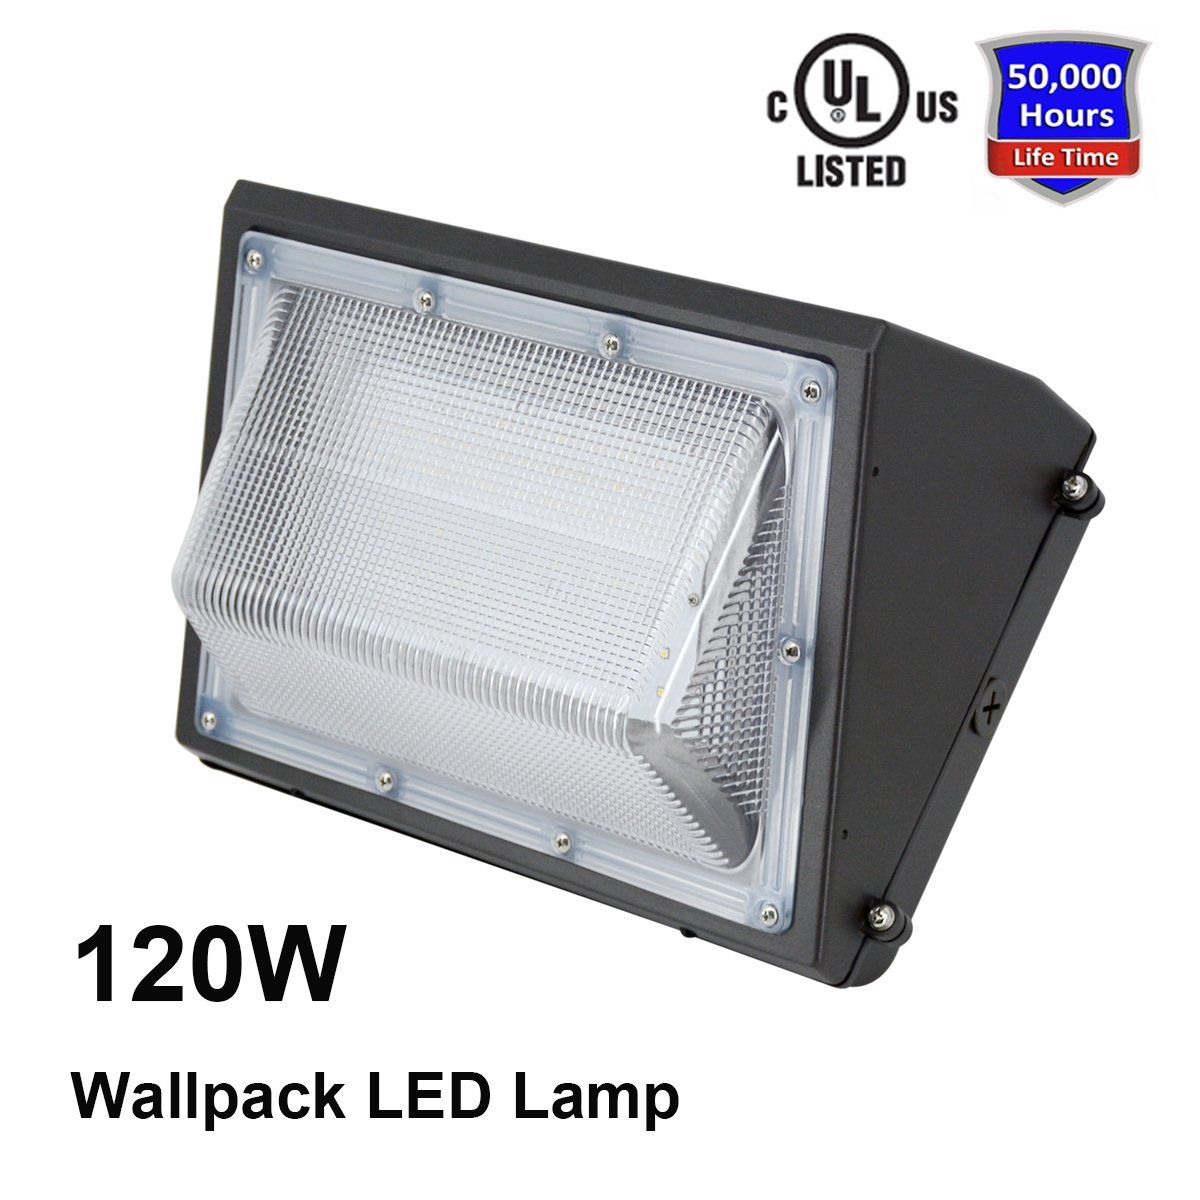 120w led wall pack light outdoor lighting 5000 5500k white 12000 120w led wall pack light outdoor lighting 5000 5500k white 12000 lumens workwithnaturefo